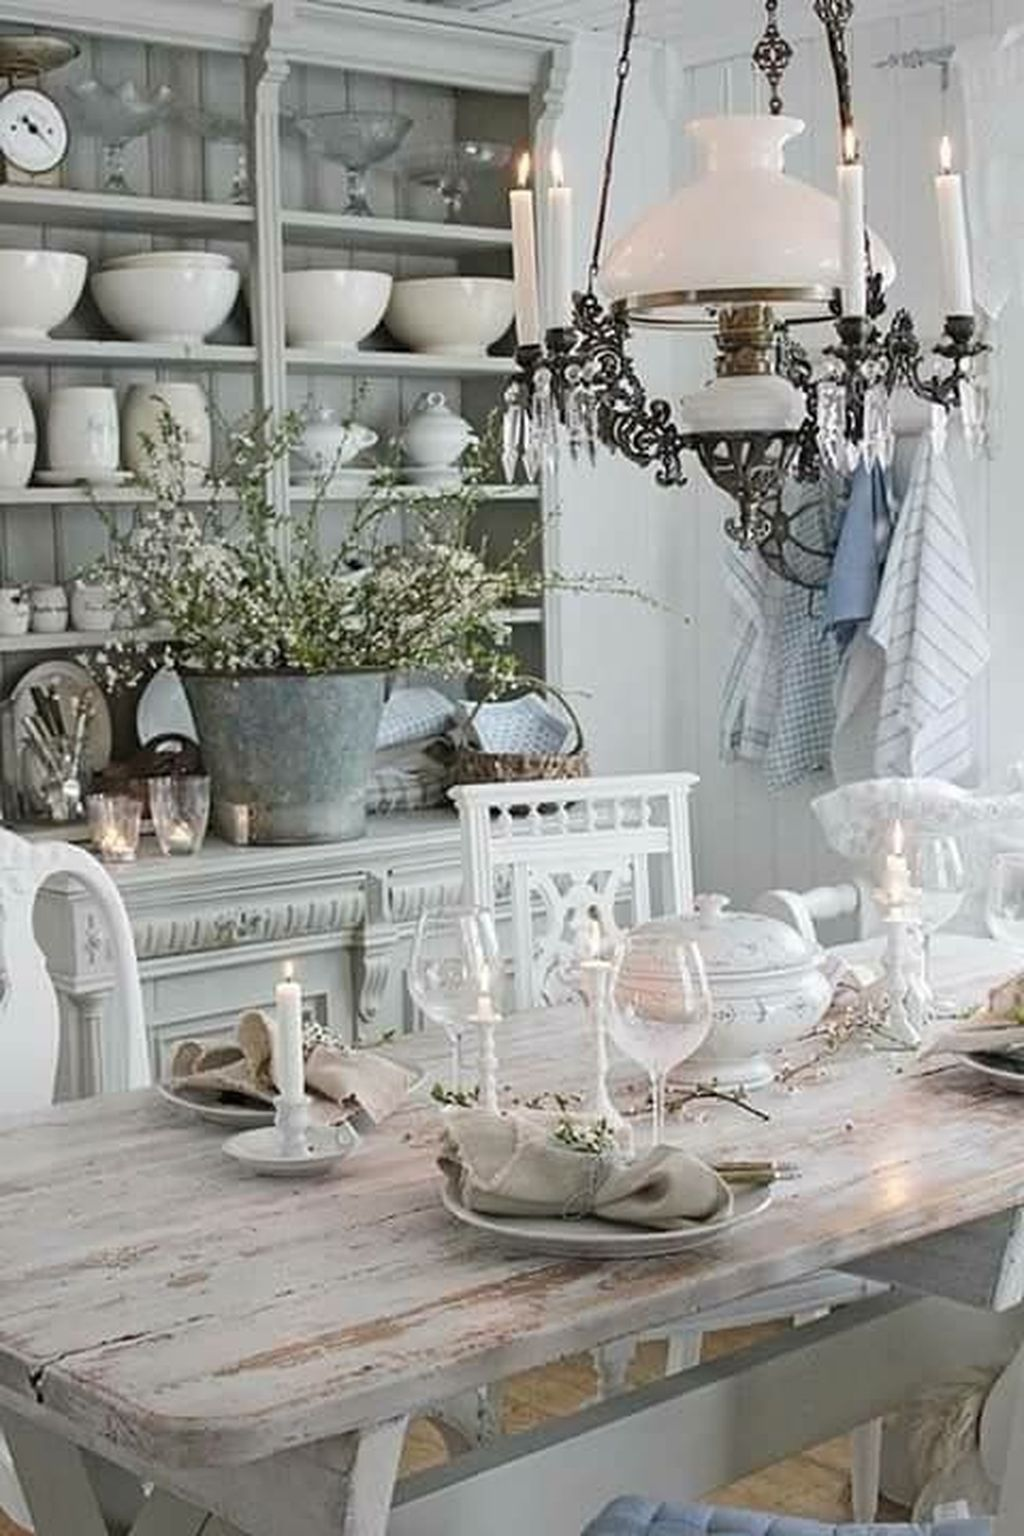 Fabulous French Country Kitchens Design Ideas 18